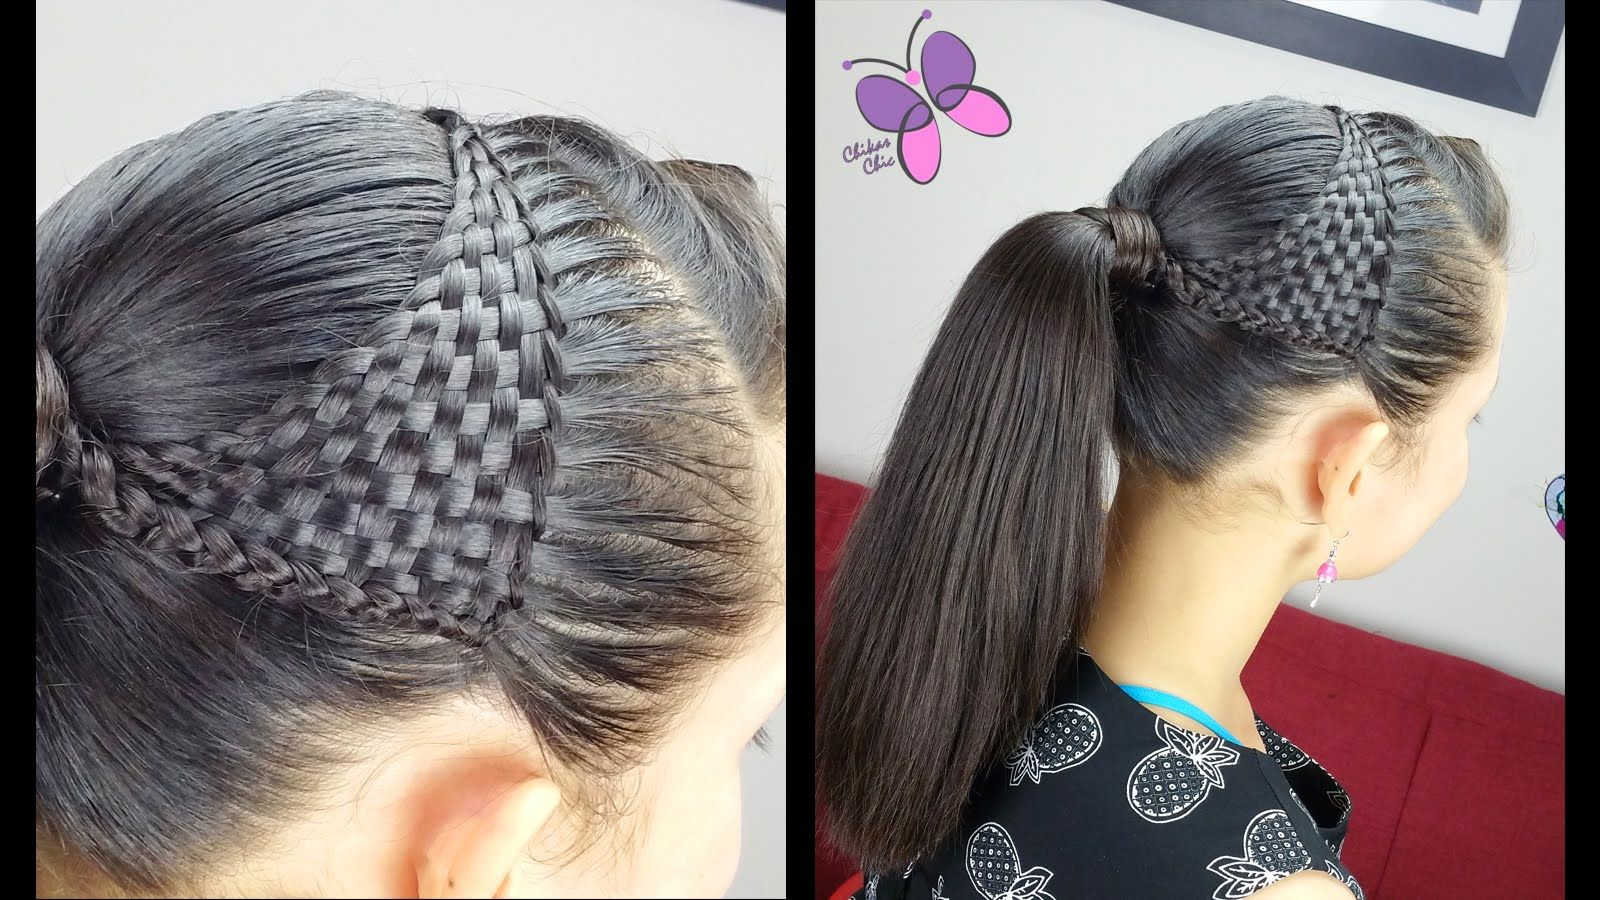 Basket woven ponytail basket wave cute girly hairstyles